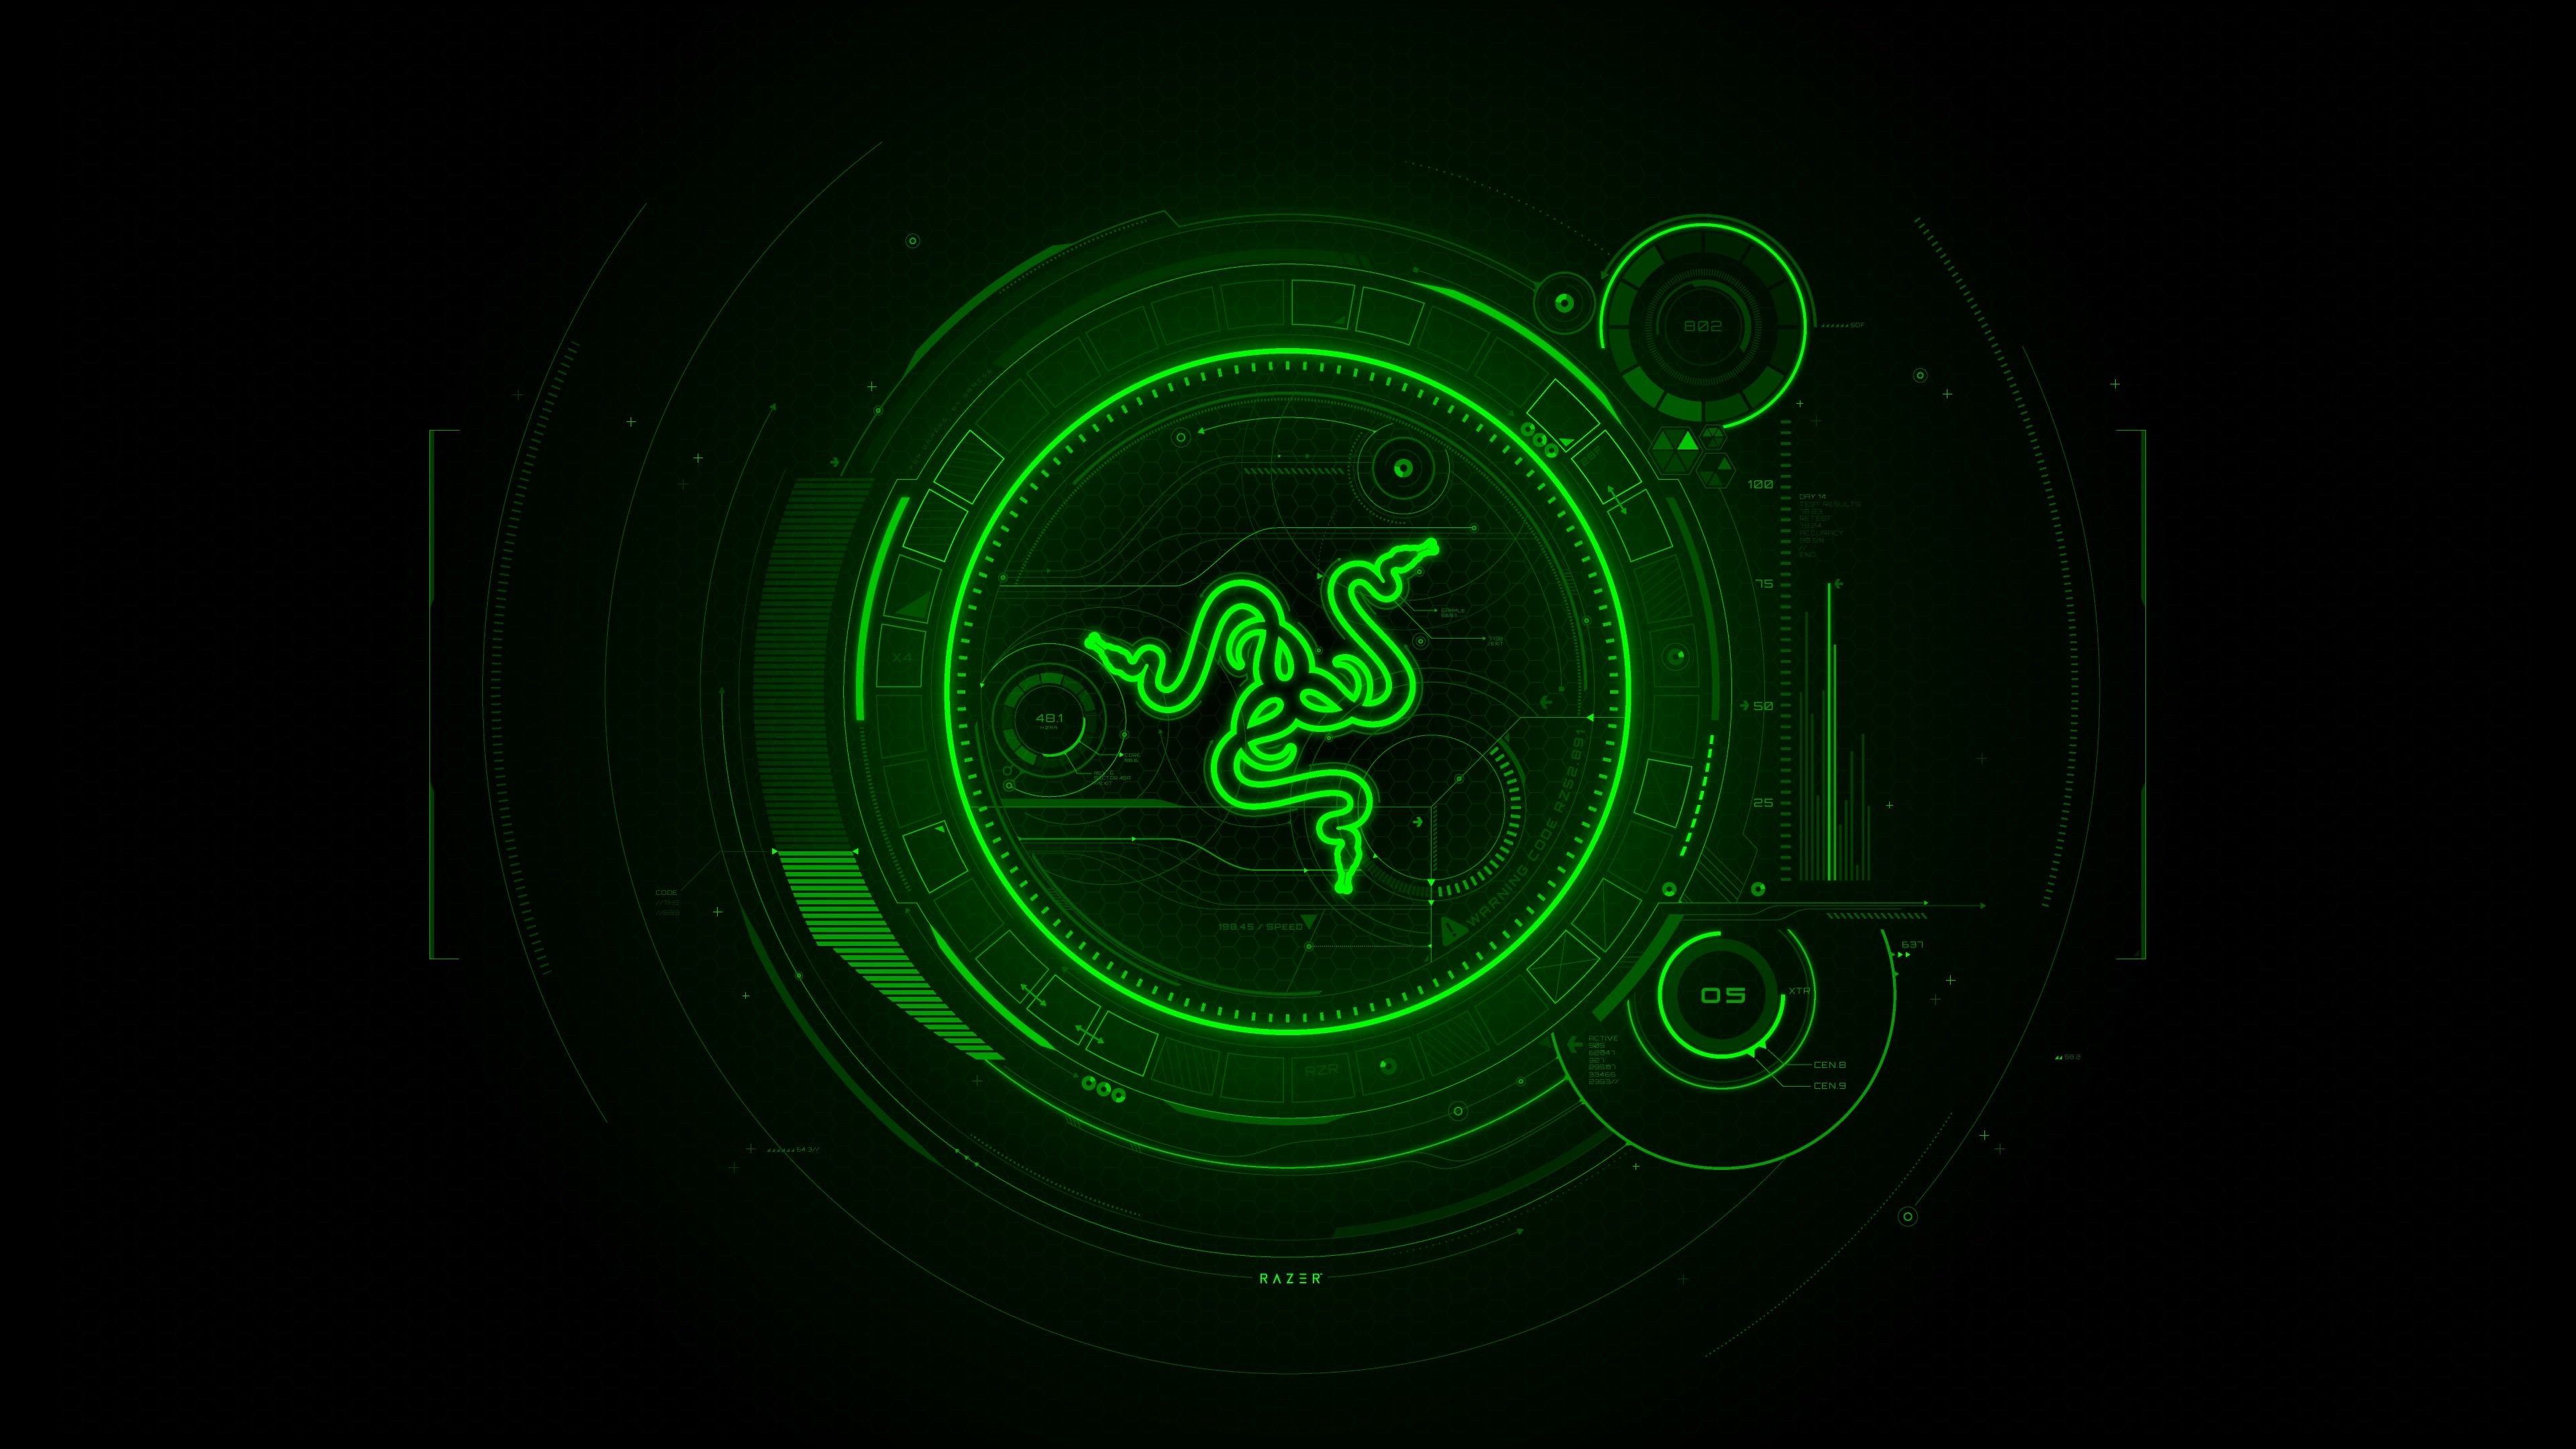 Razer 4k Wallpapers Top Free Razer 4k Backgrounds Wallpaperaccess